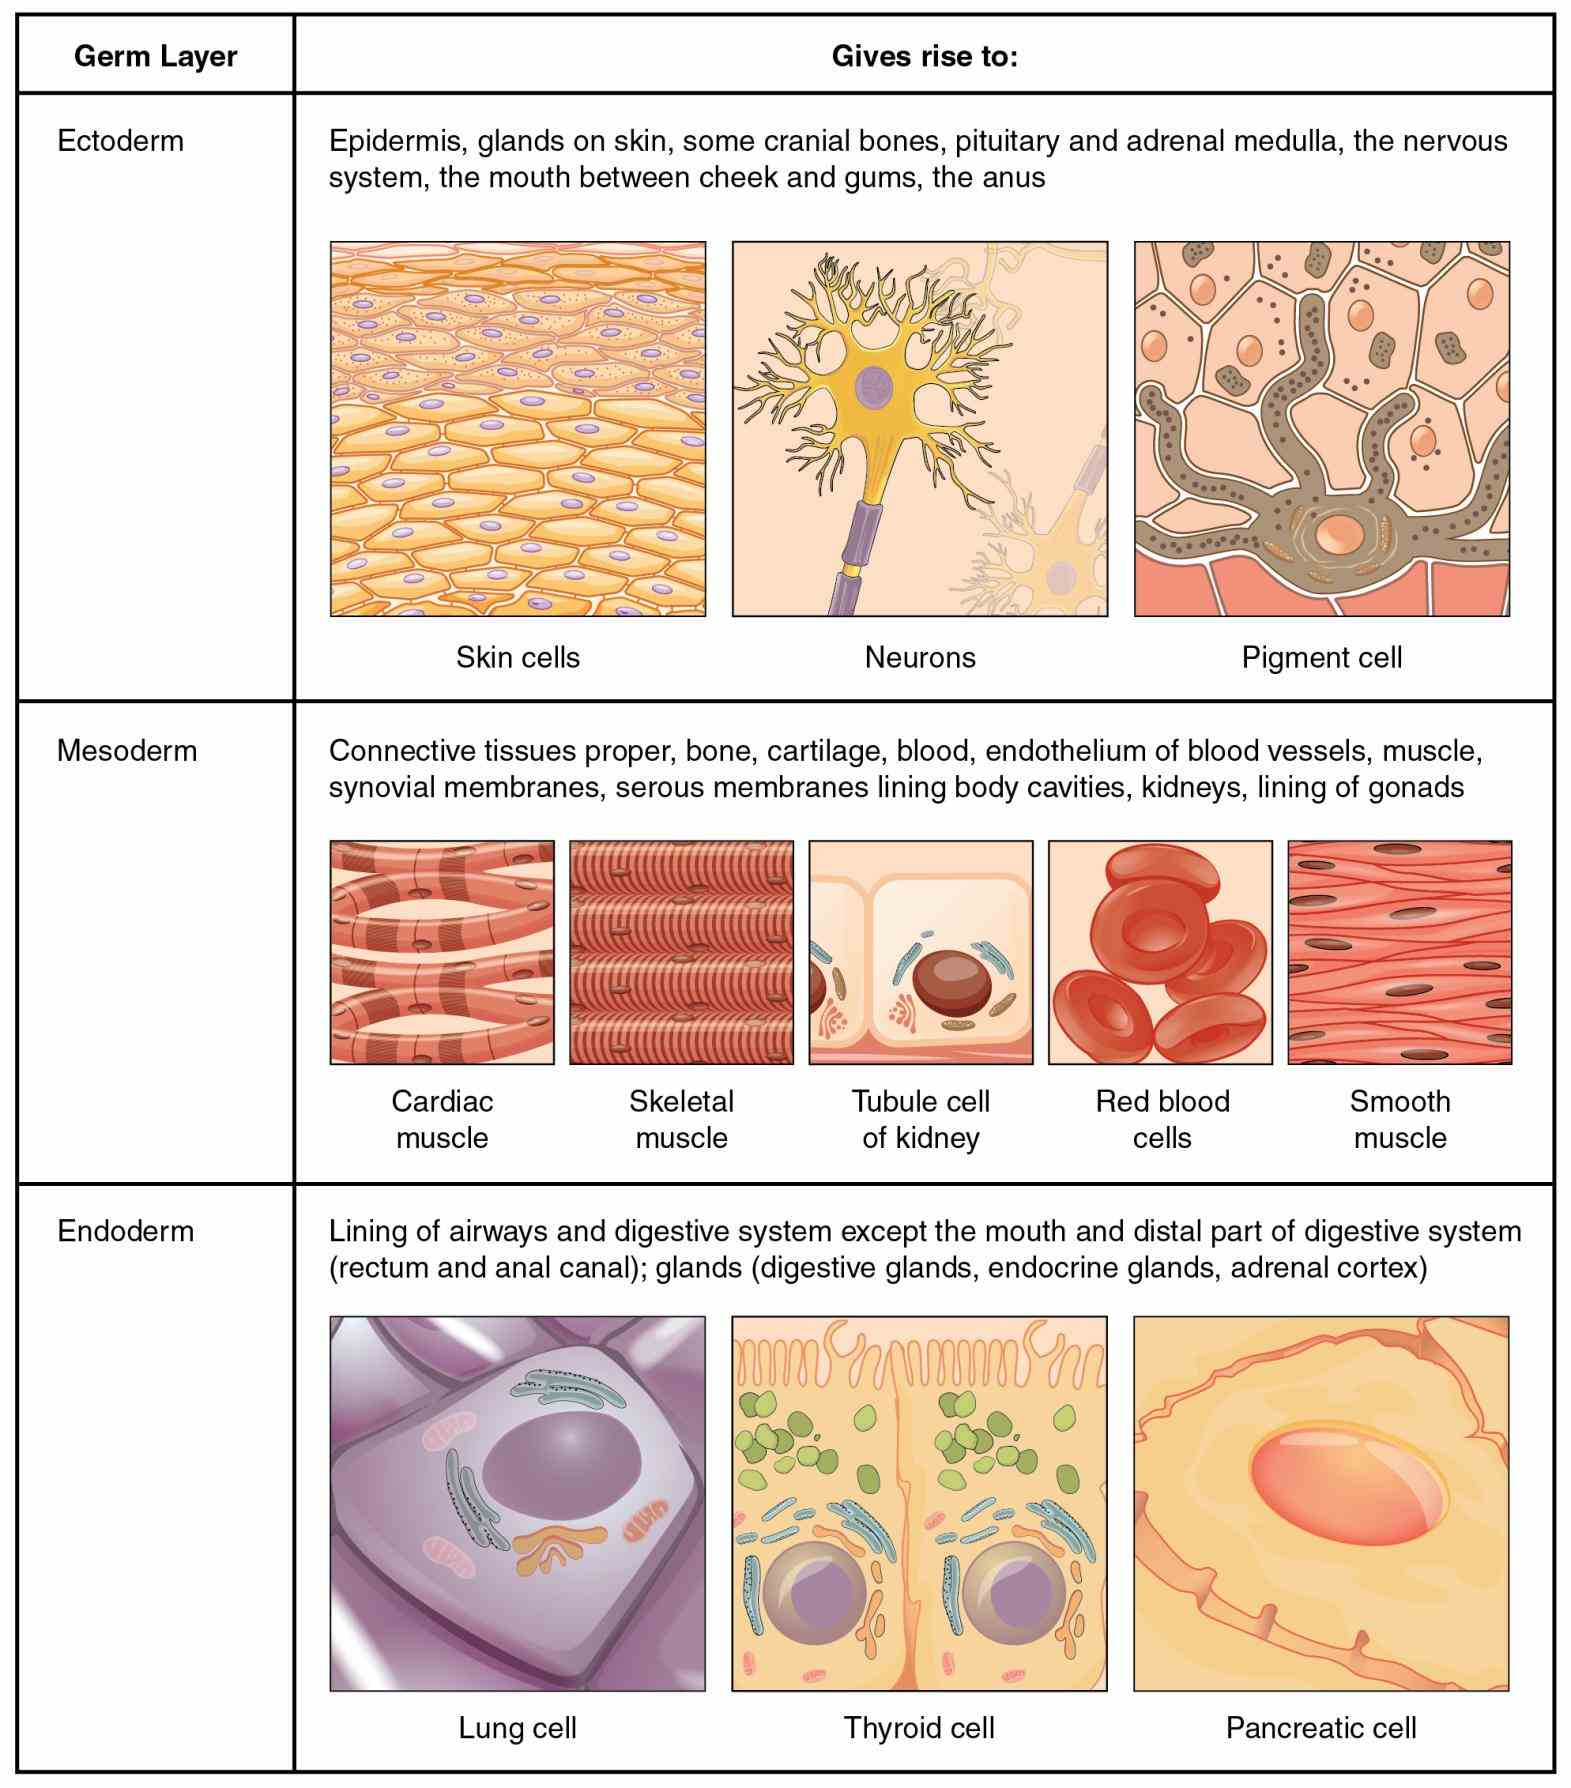 stratified epithelium in human body b Epithelial Tissues In Human Body the cells rest on a basement membrane which